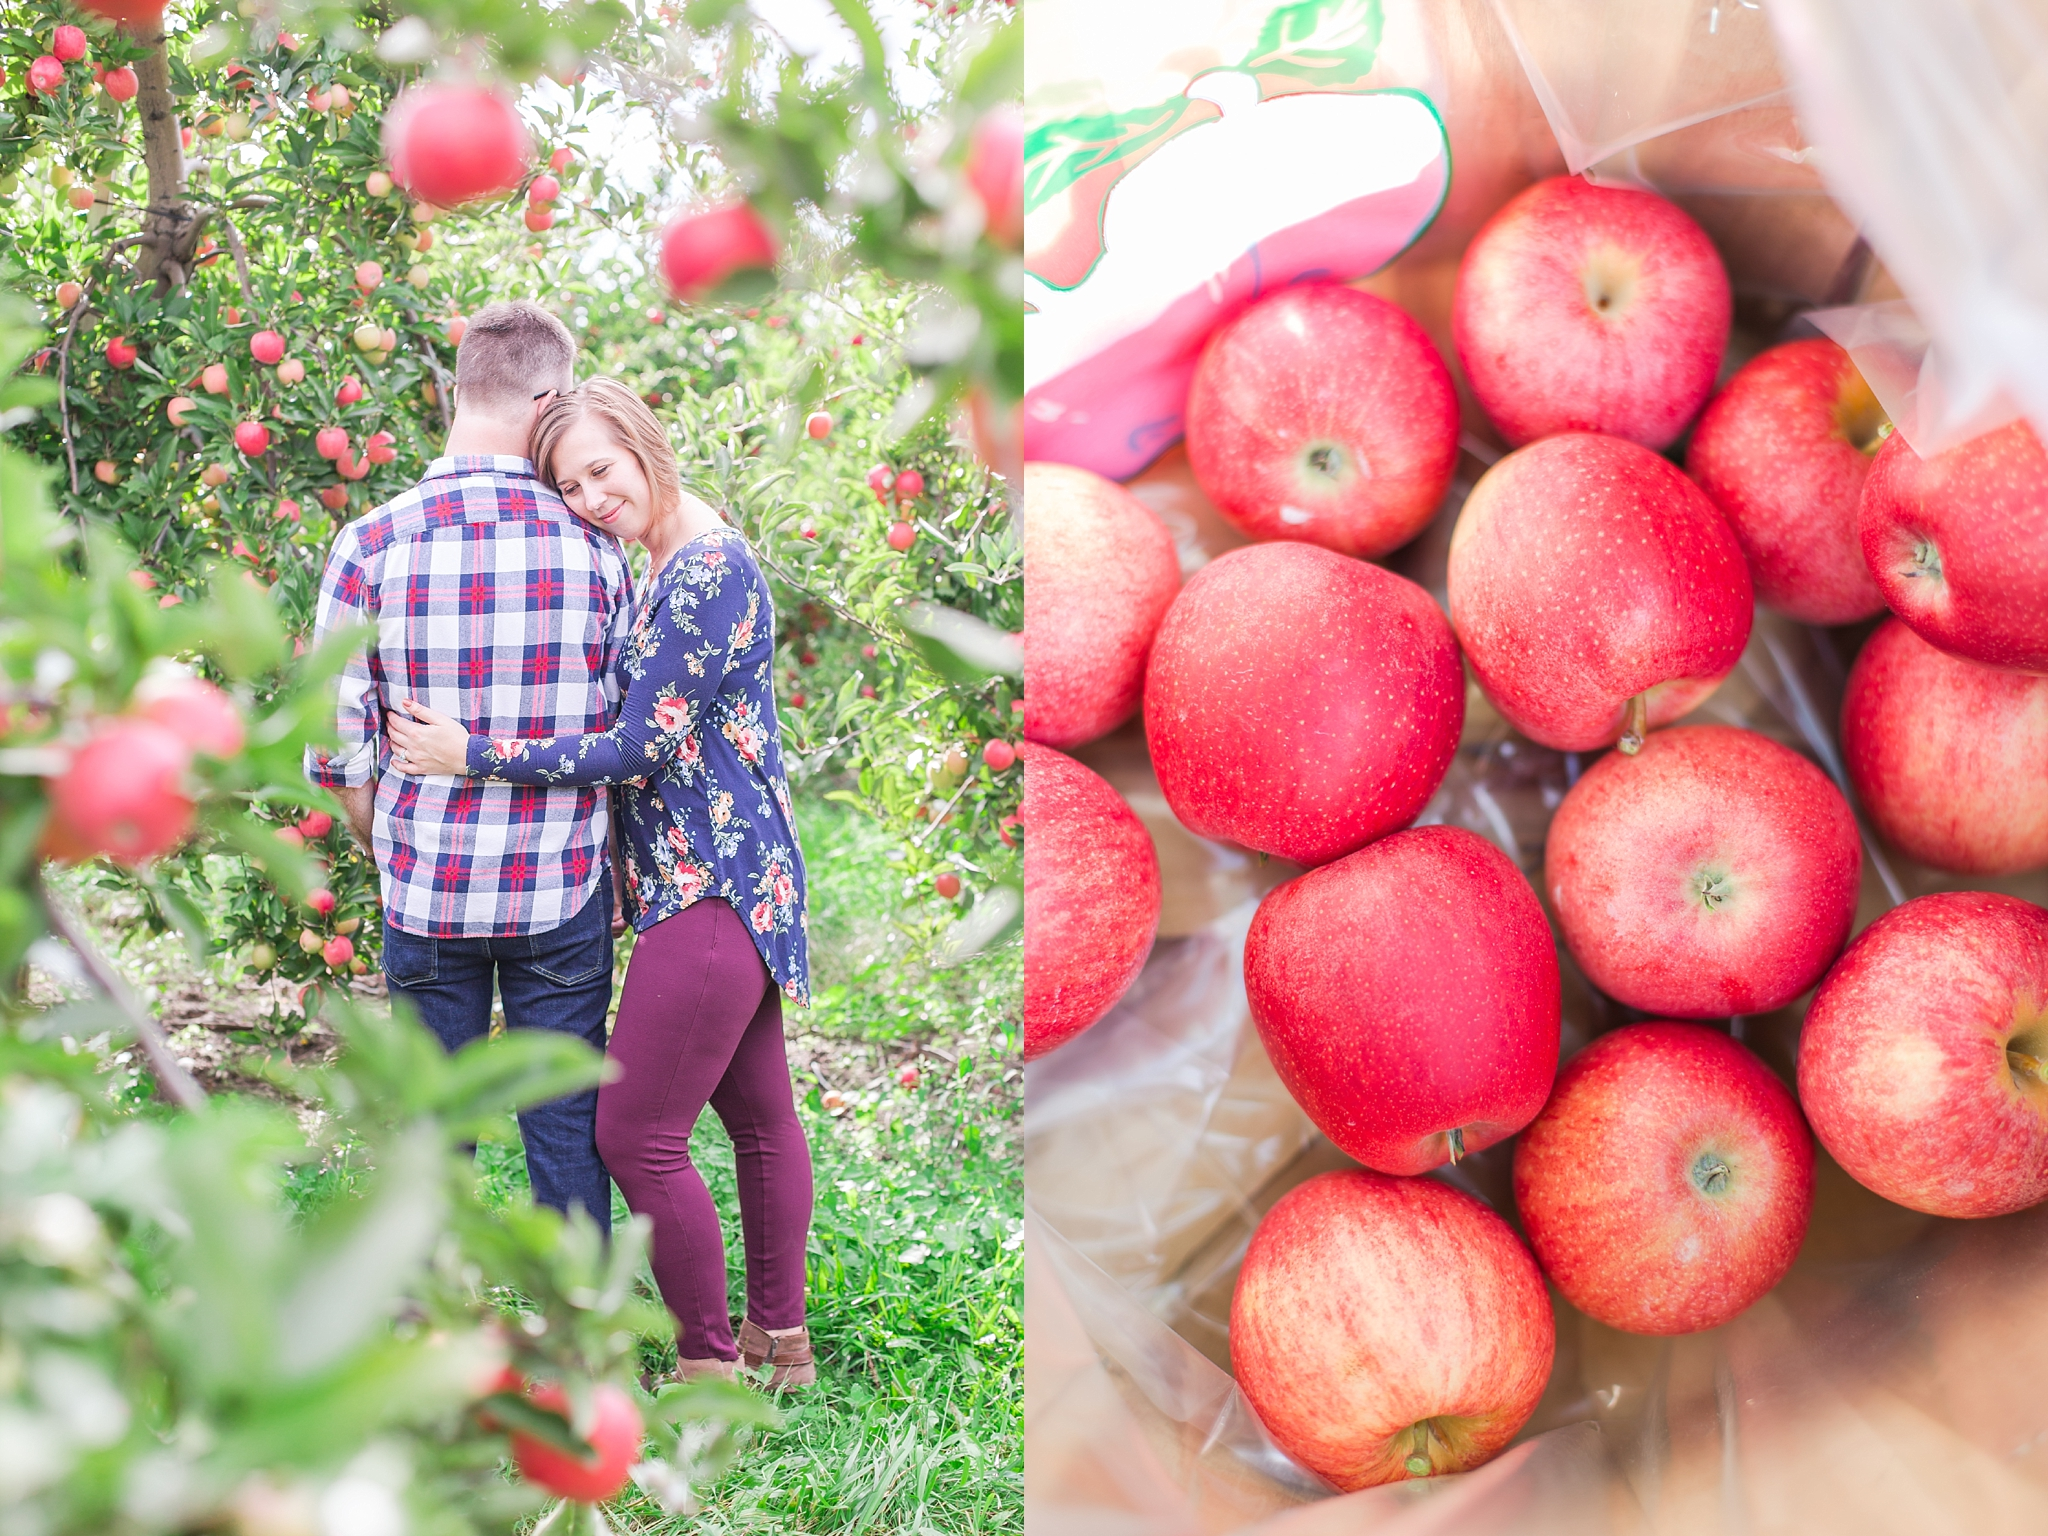 playful-fall-engagement-photos-at-hy's-cider-mill-ochard-in-bruce-township-michigan-by-courtney-carolyn-photography_0009.jpg